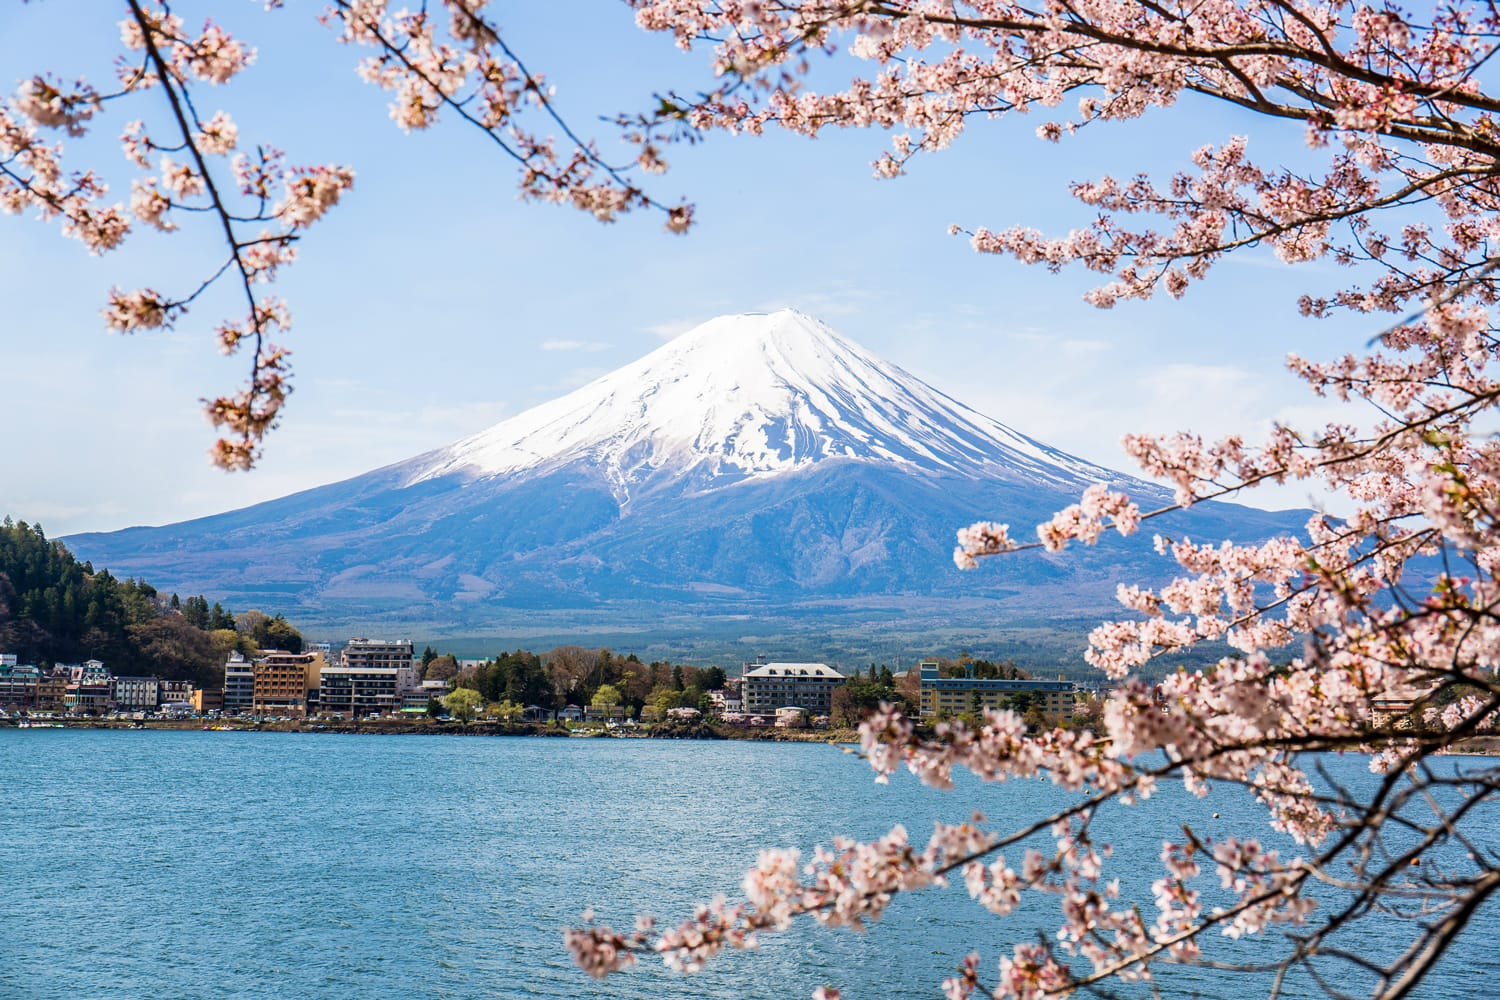 Mount Fuji with cherry blossom at Lake kawaguchiko in japan